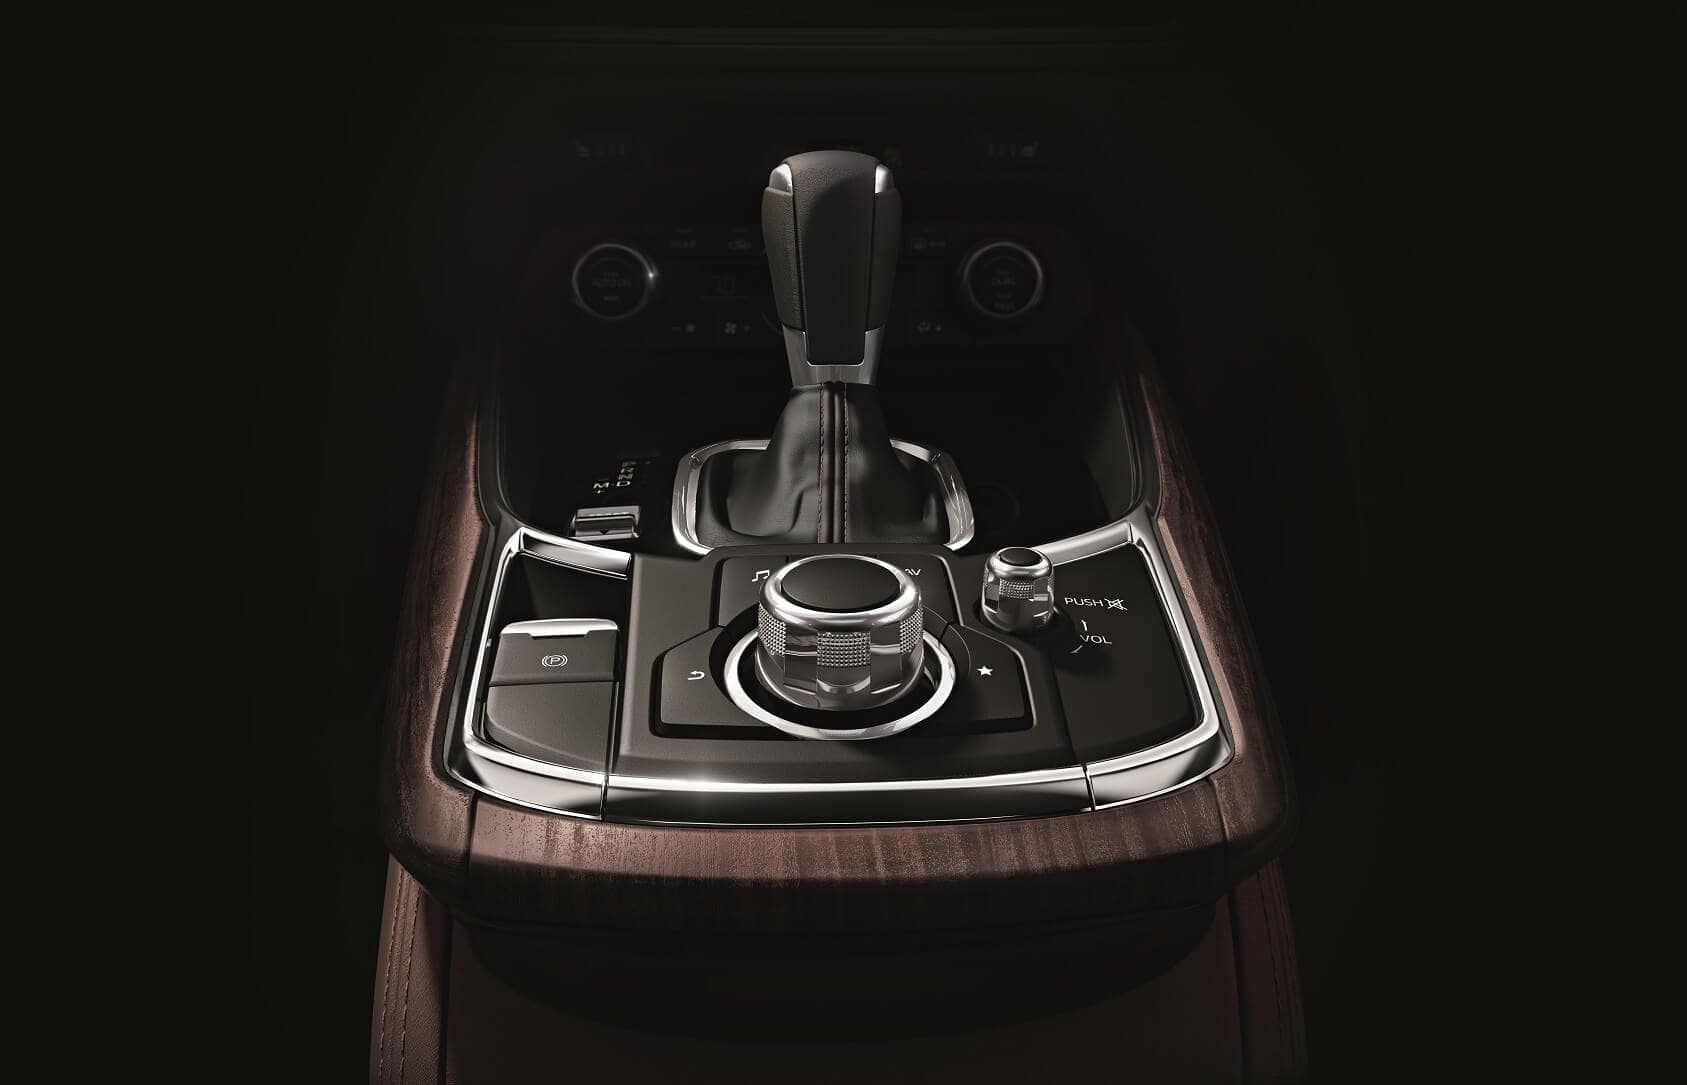 Mazda CX-9 Interior with Leather Wrapped Shift Knob